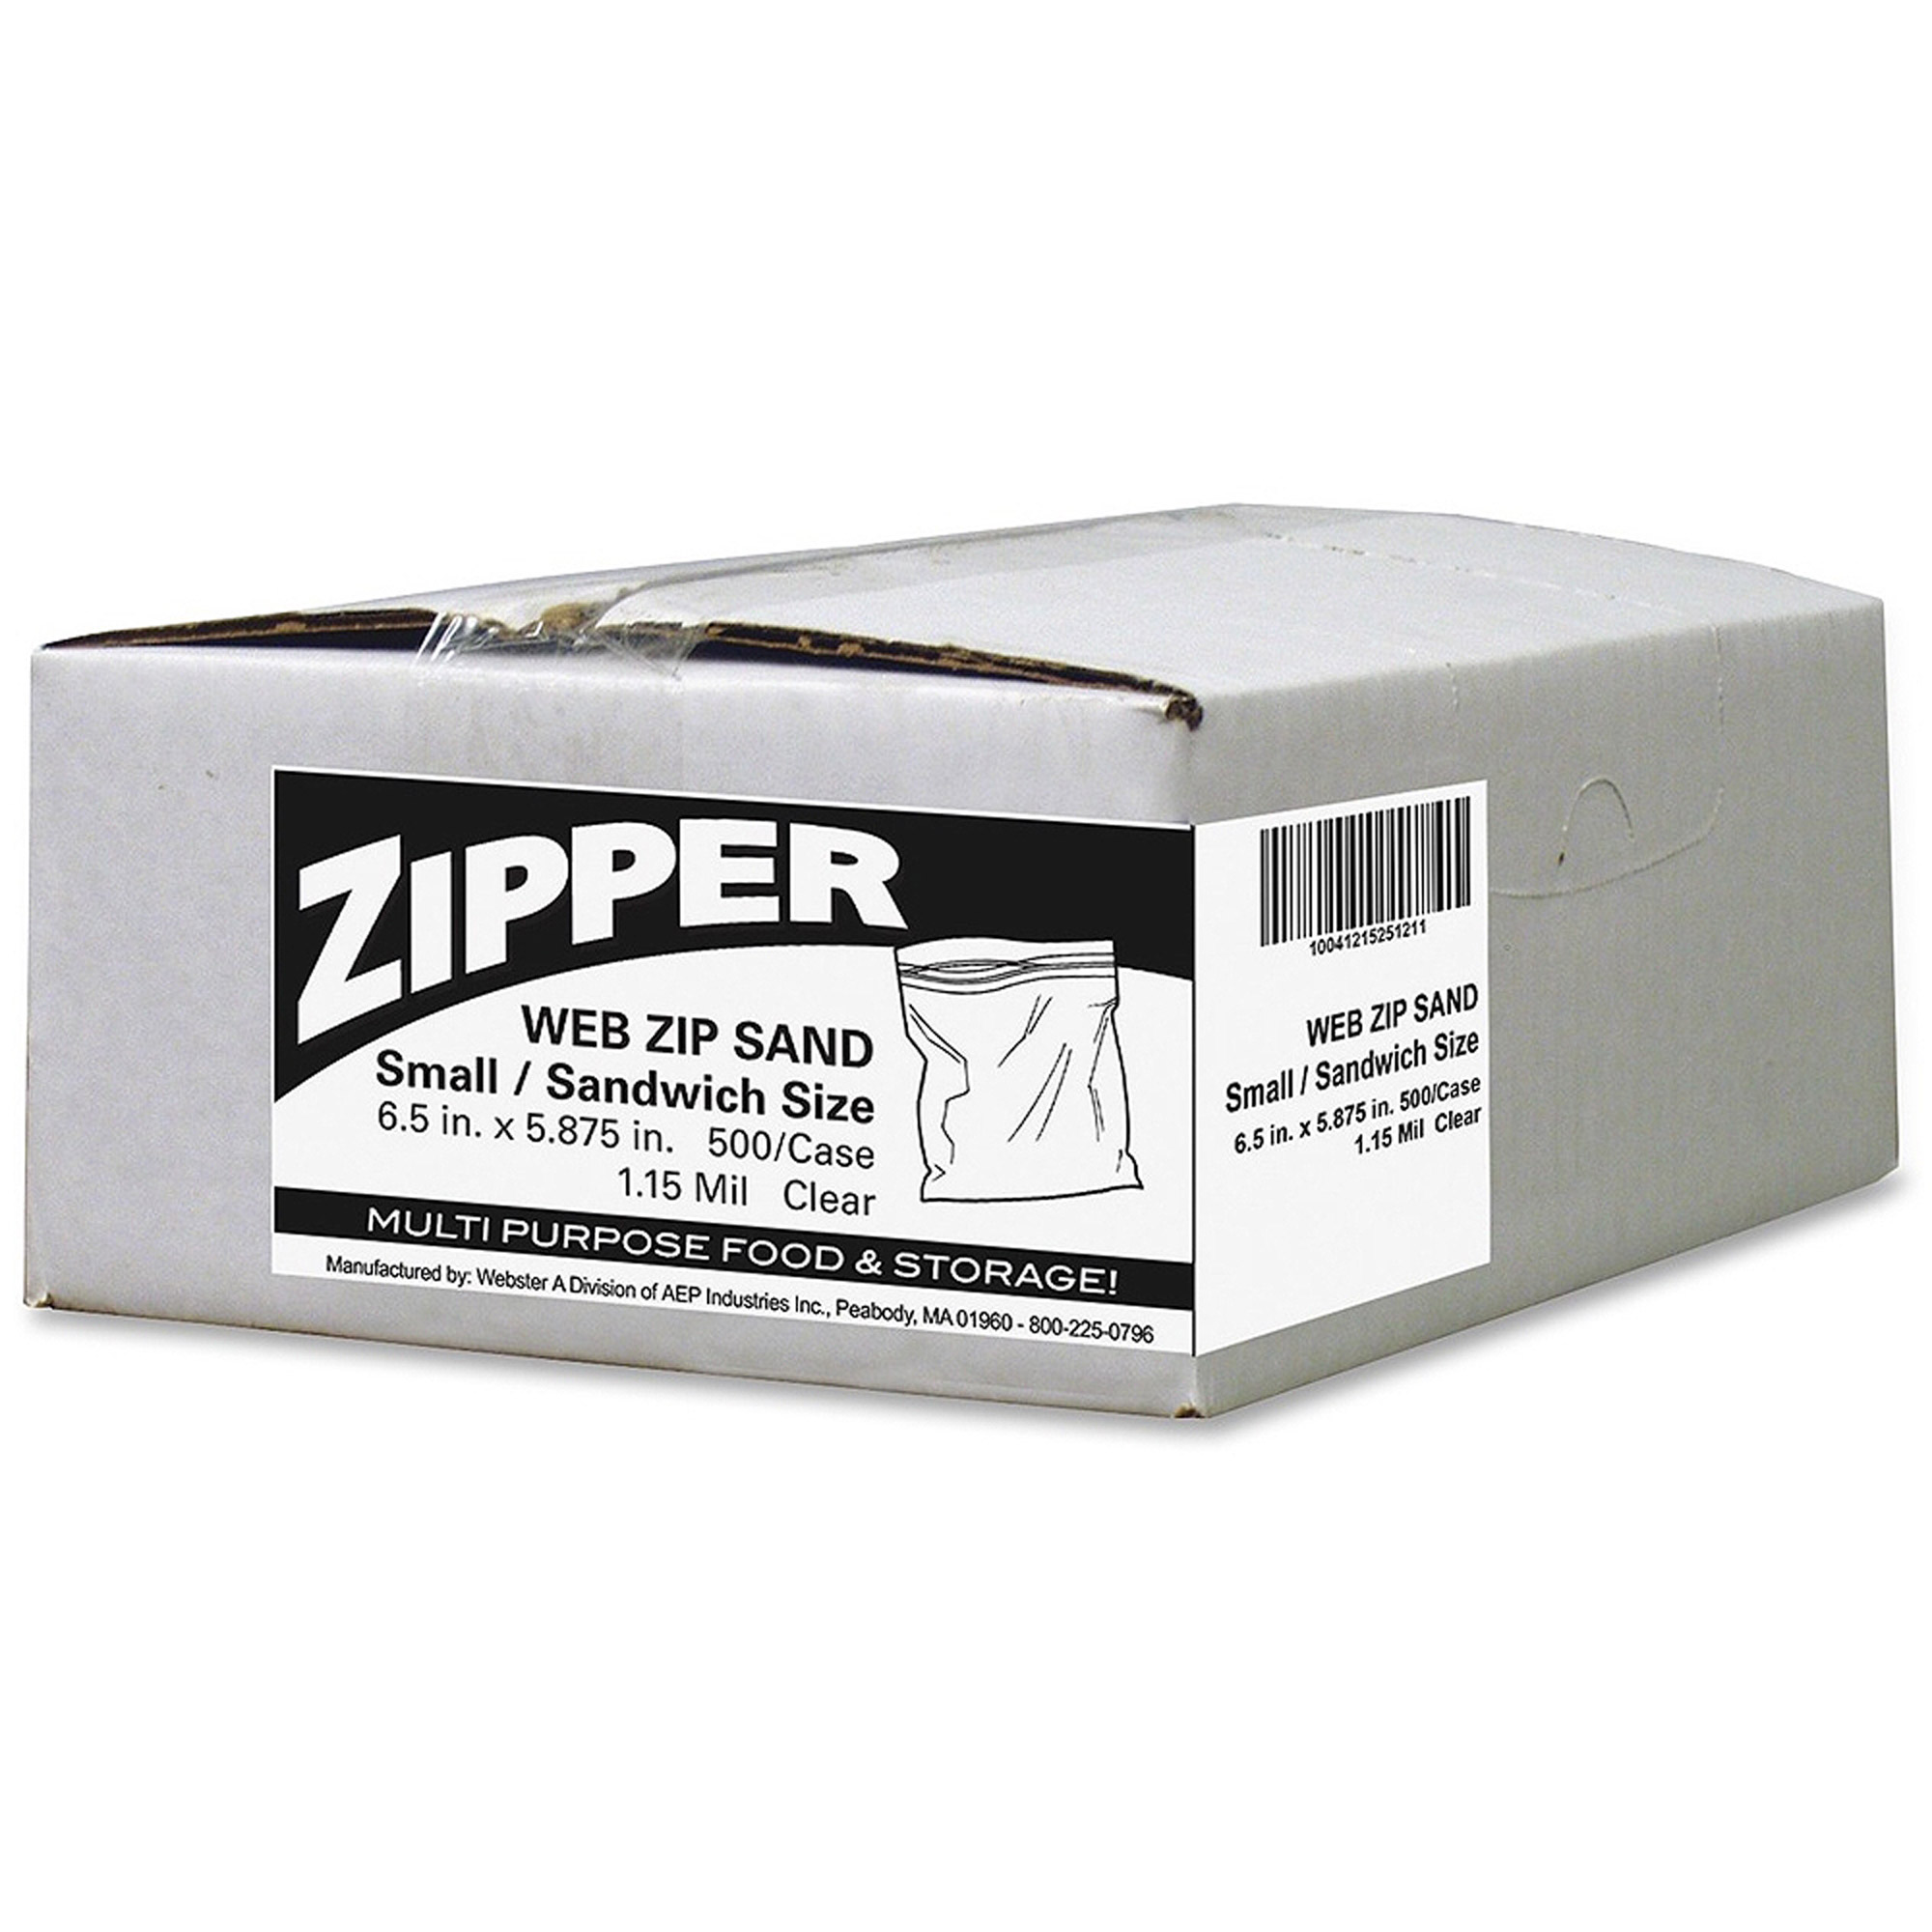 Webster Zipper Sandwich Size Storage Bags, 500 count